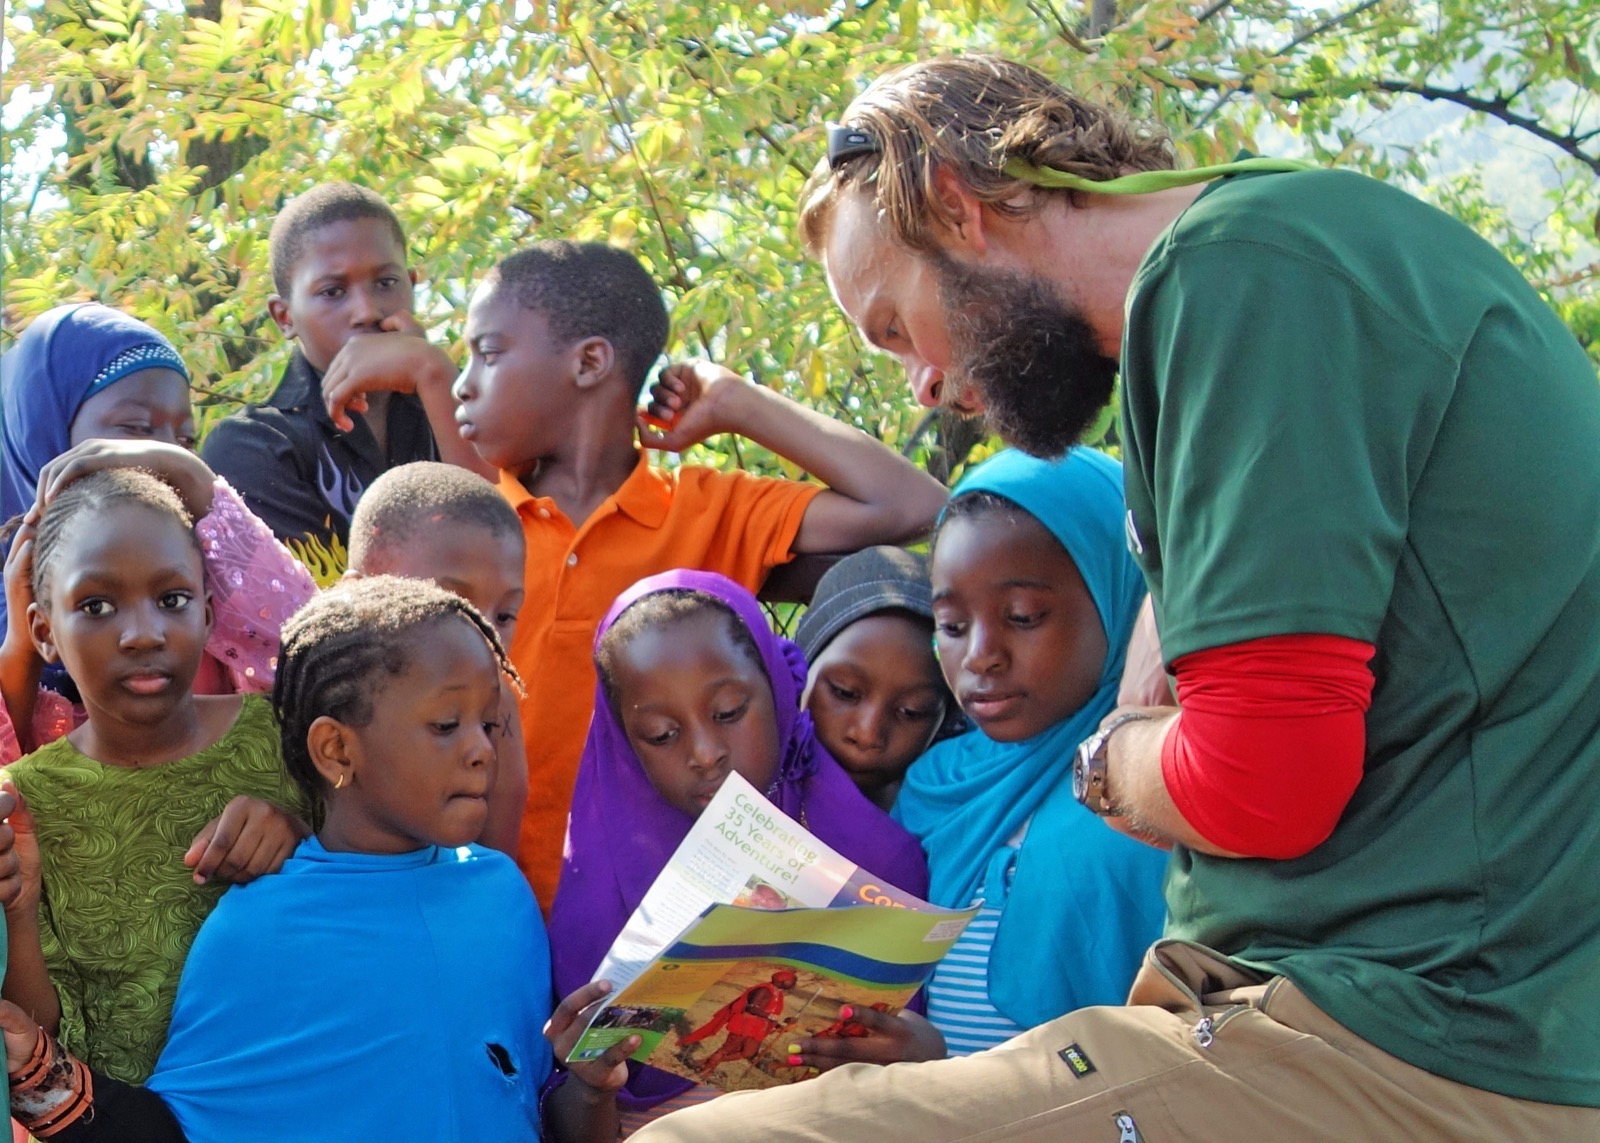 a group of children learn about different WI trips with a crew member in the outdoors